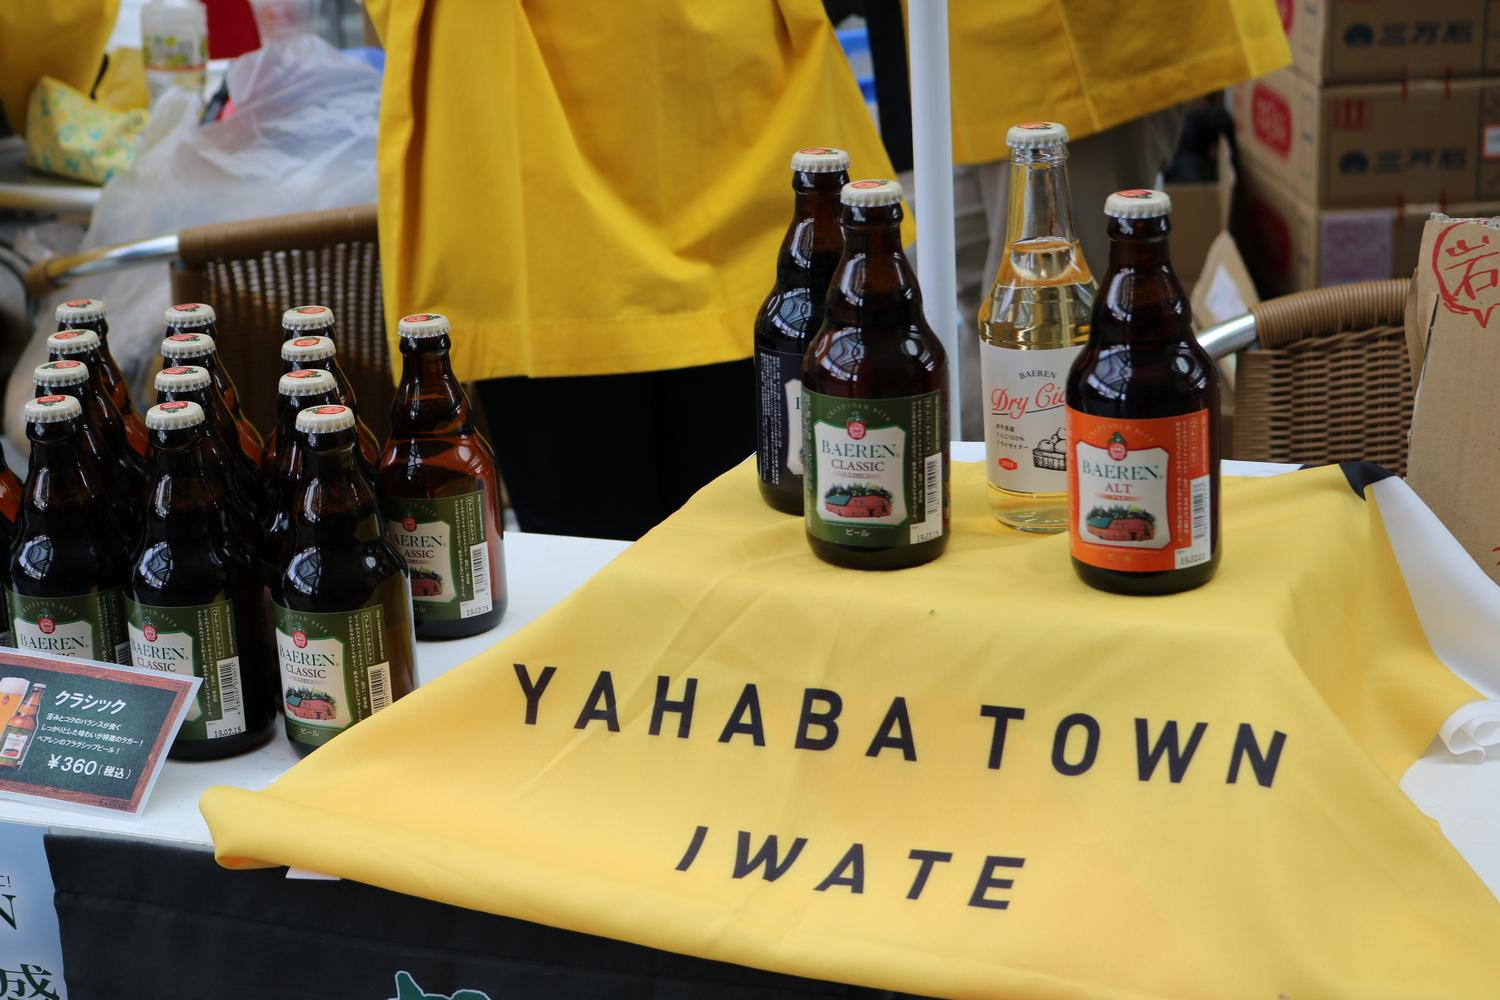 Yahaba Town in Iwate Prefecture brought a selection of local brews not usually available for purchase in Tokyo.